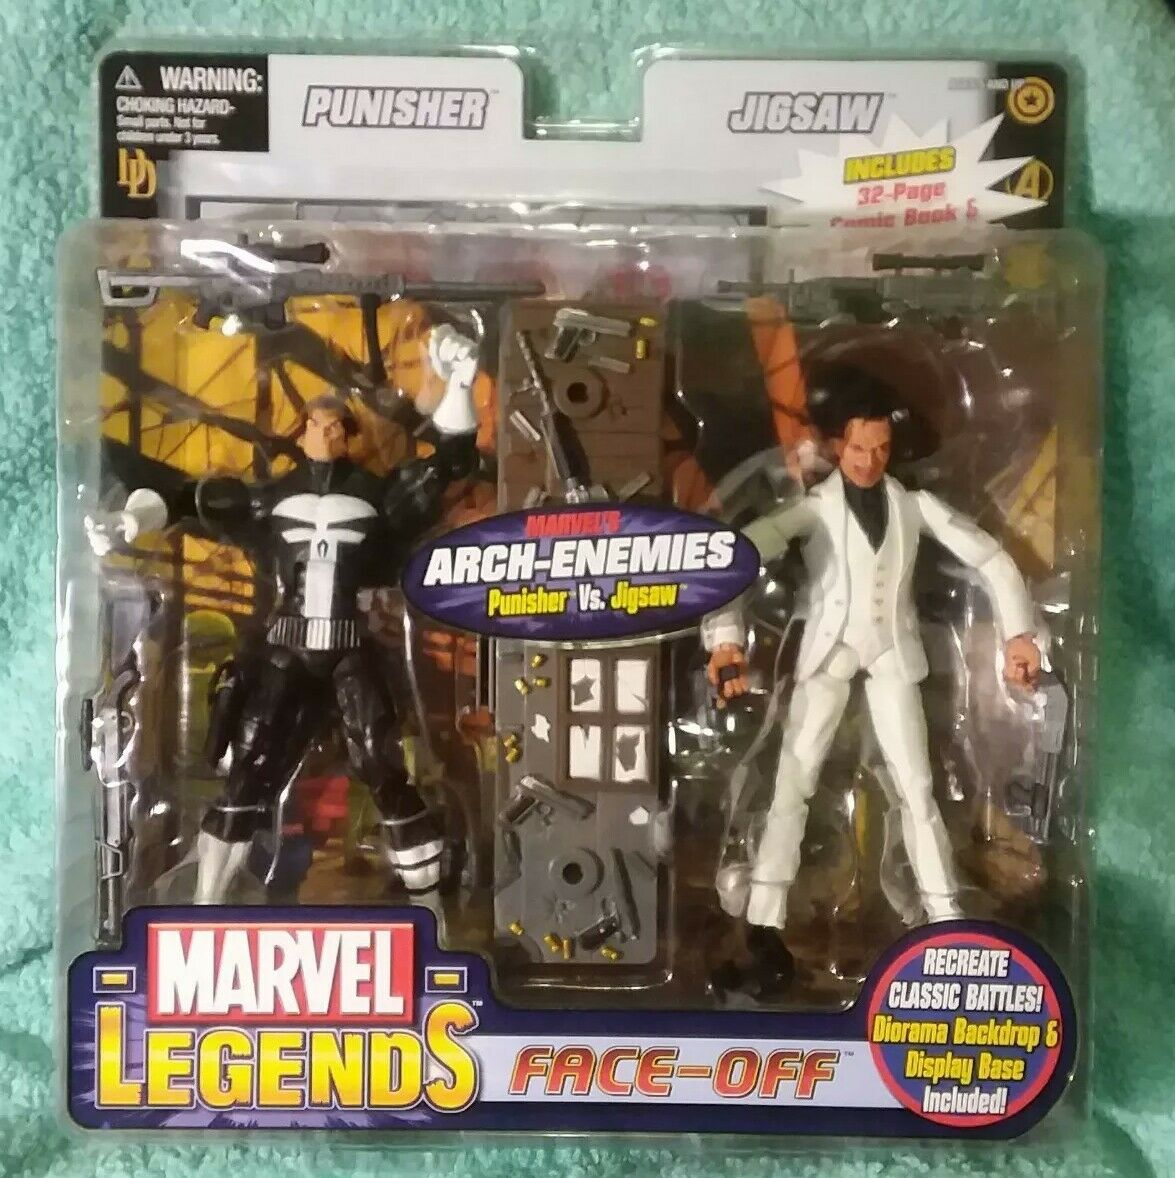 Punisher vs Jigsaw  variante Costume Blanc   Marvel Legends Face-Off   toybiz Figure